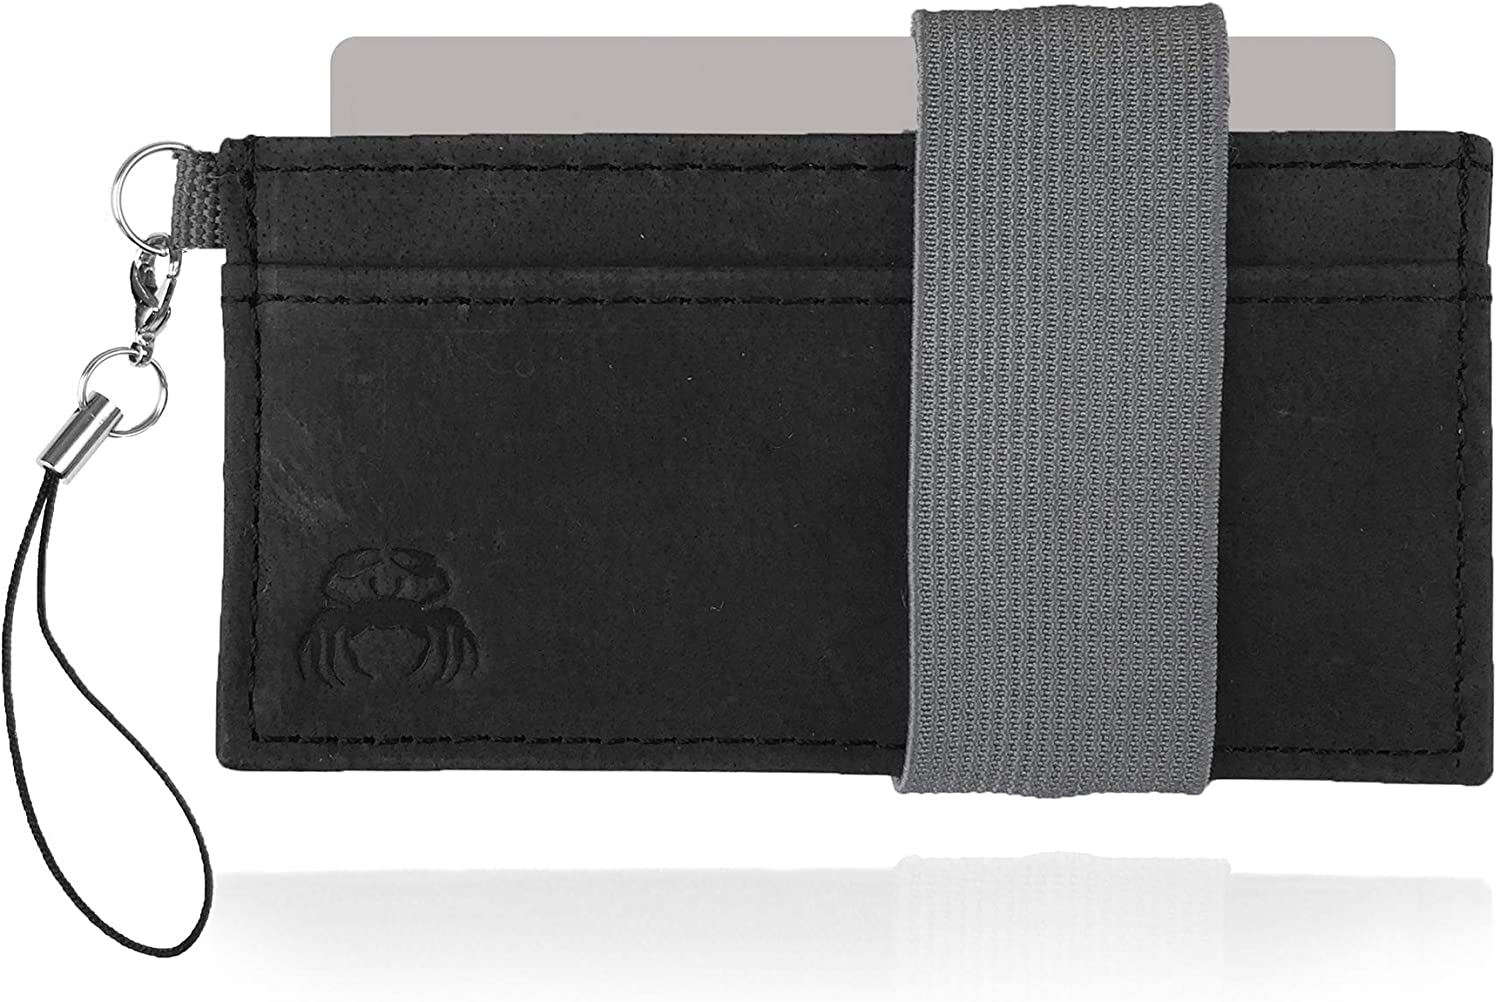 Crabby Gear - Front Pocket Wallet - Minimalist Wallet - Leather